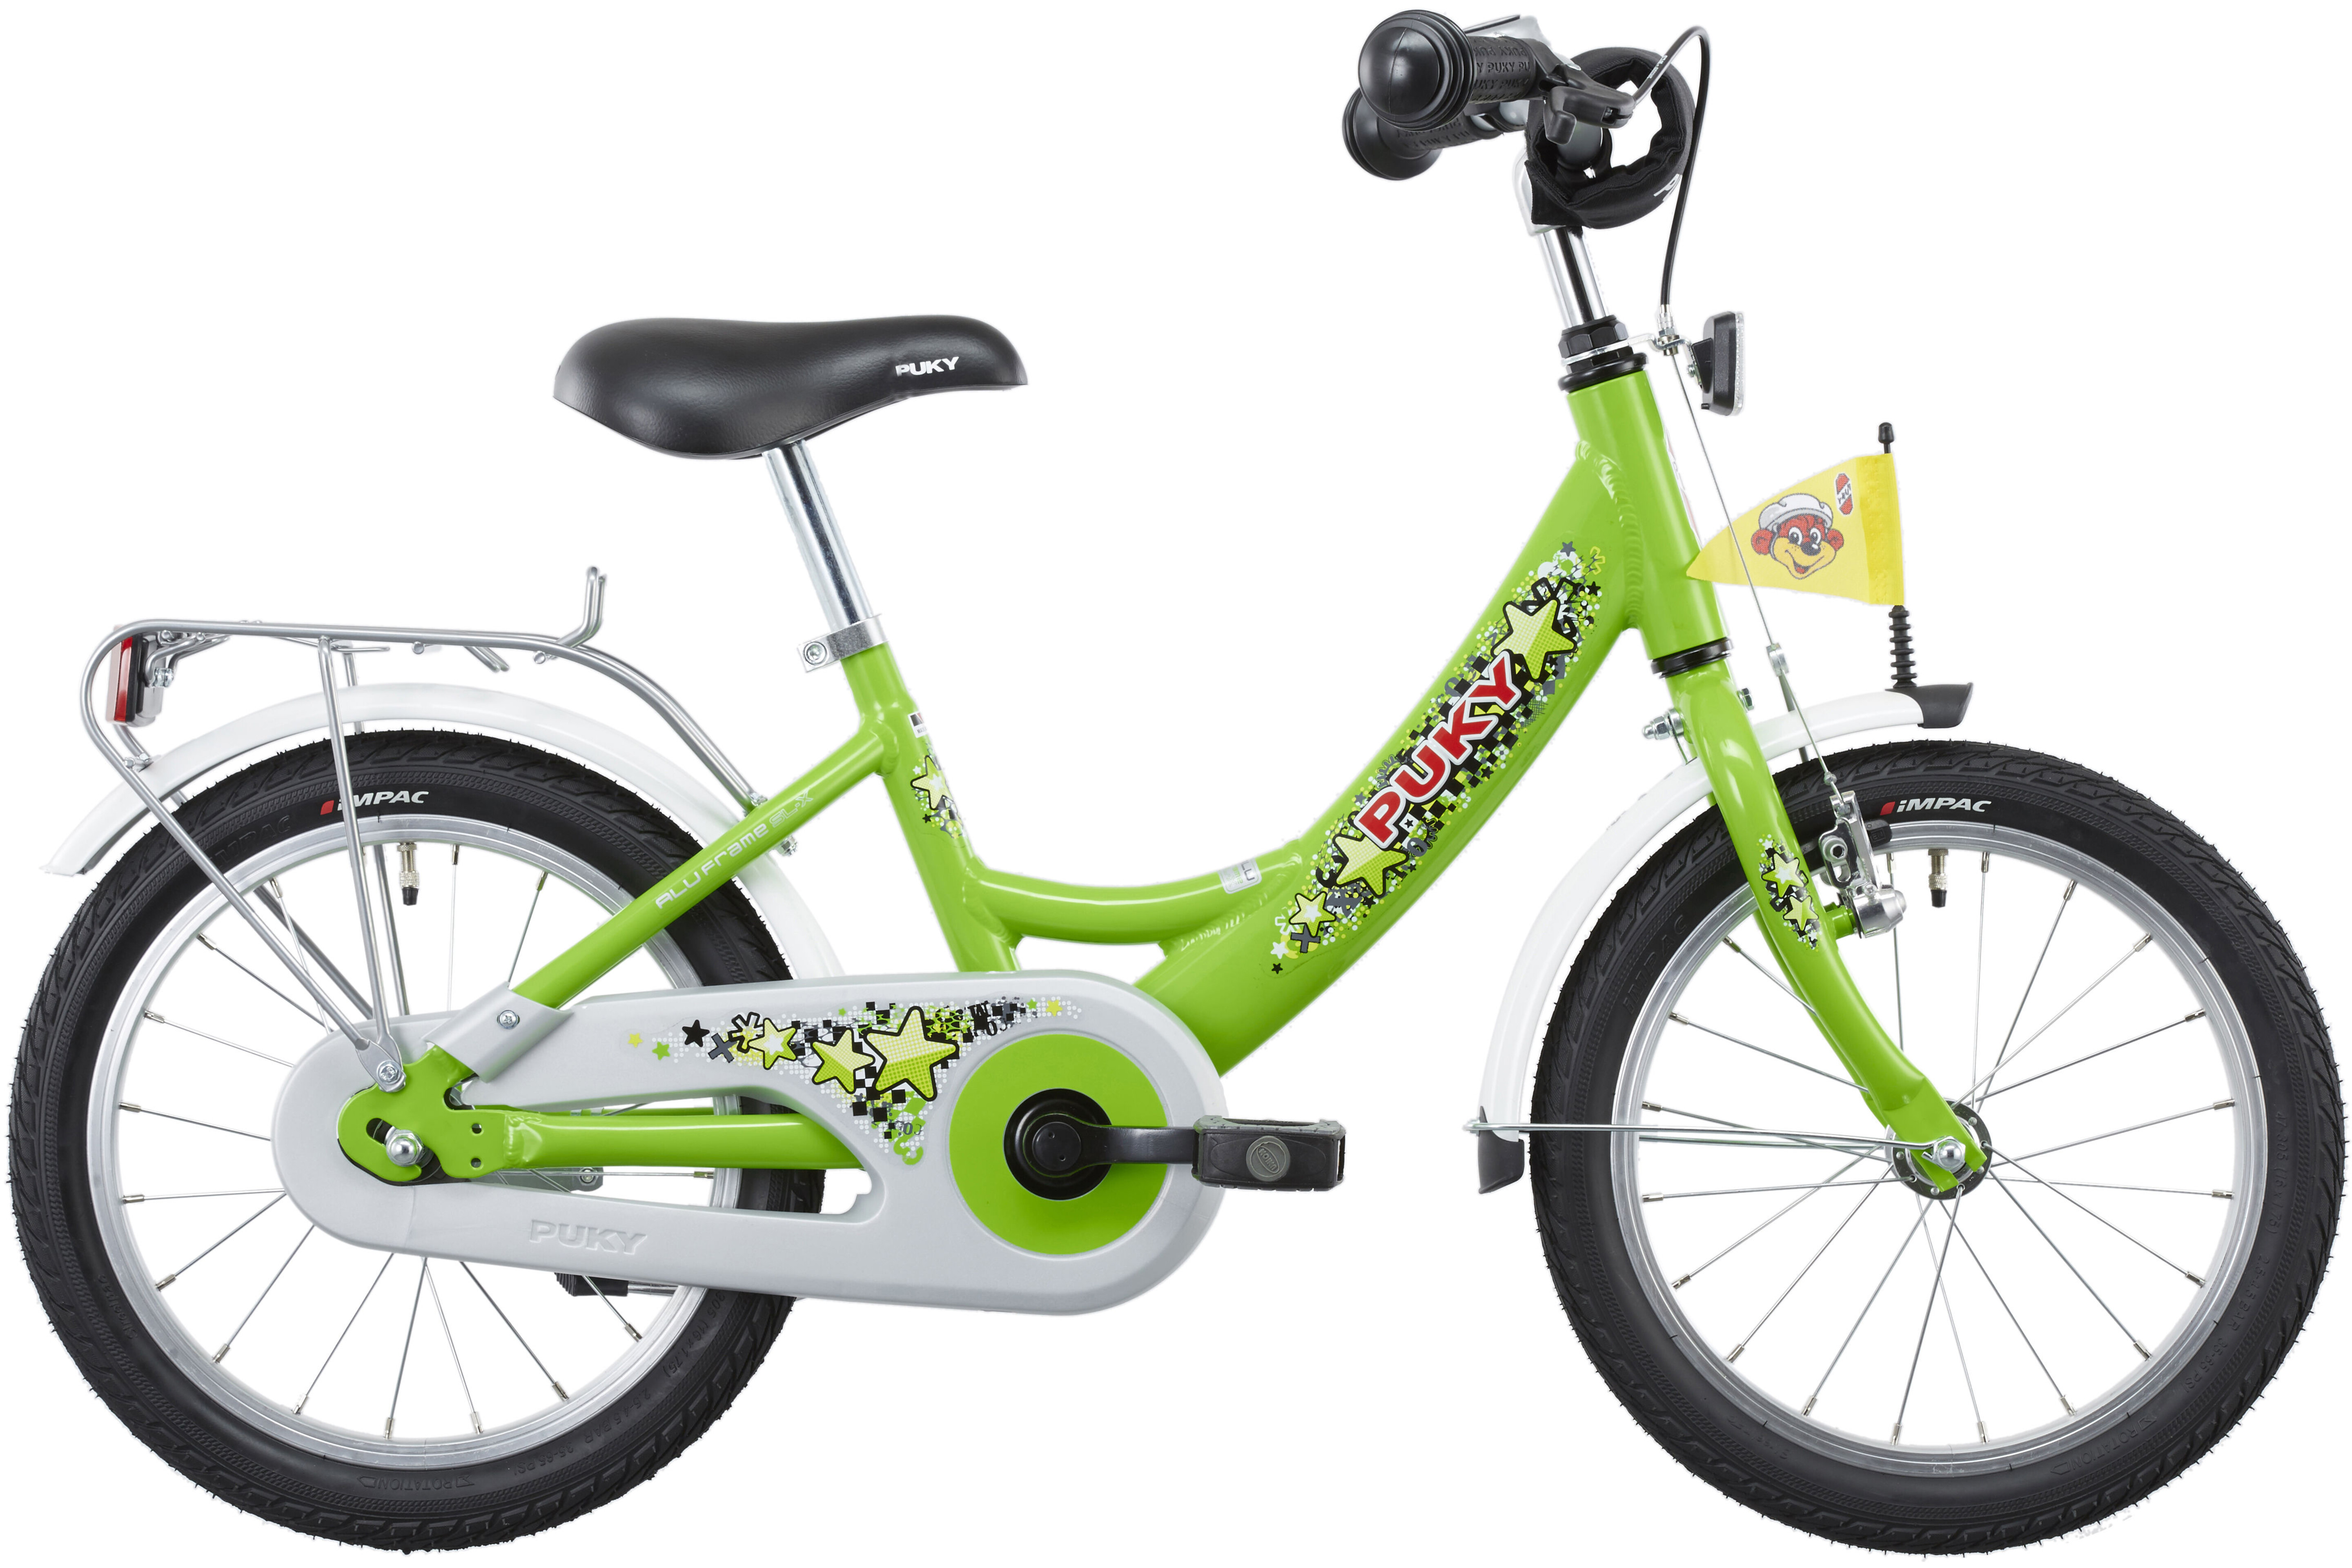 puky zl 16 1 alu kinderfahrrad 16 kiwi online kaufen. Black Bedroom Furniture Sets. Home Design Ideas